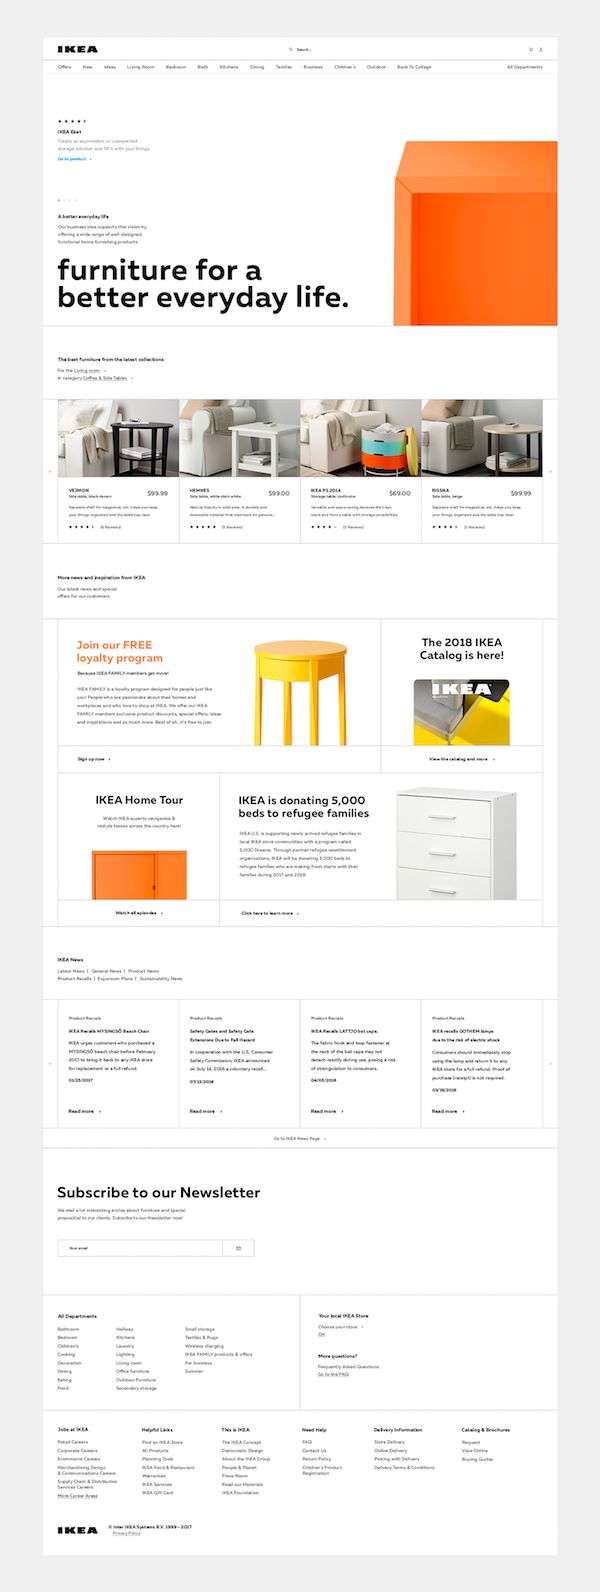 Super Clean IKEA Website Redesign Concept Puts Focus On The Products